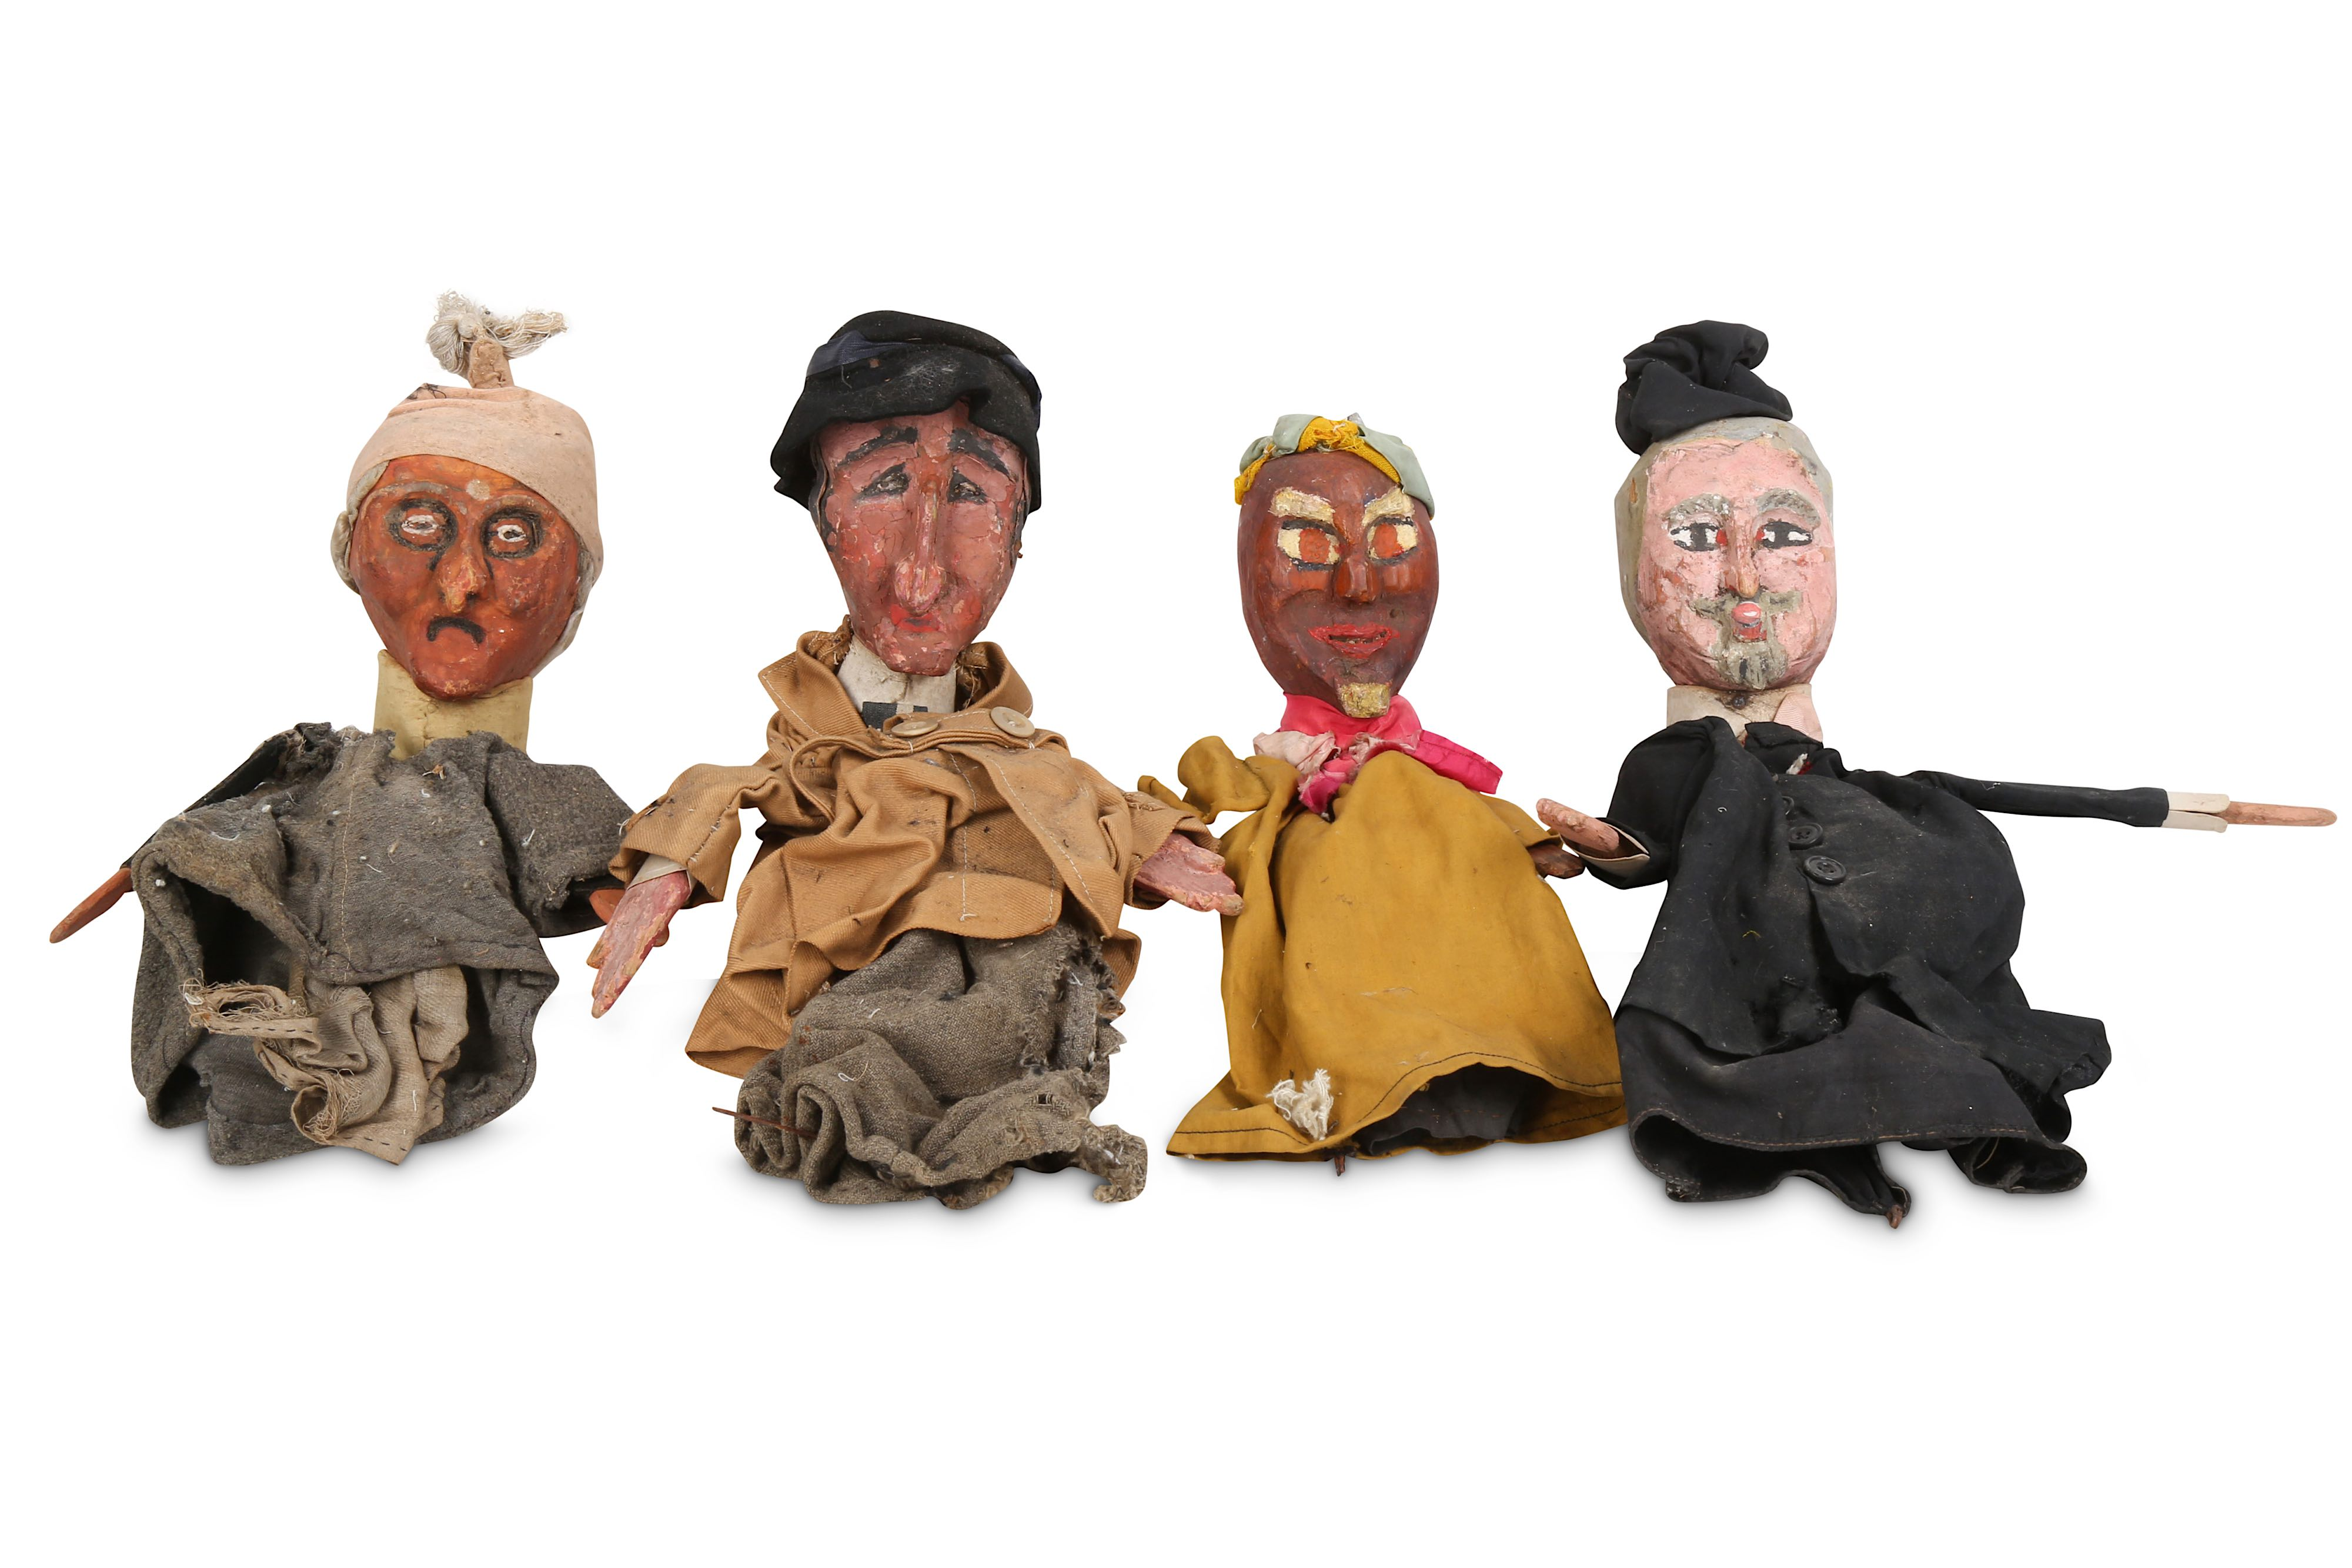 A SET OF EIGHT 1930'S FRENCH HANDPAINTED AND CARVED WOOD PUPPETS FOR 'LE GUIGNOL DES ENFANTS' - Image 3 of 4